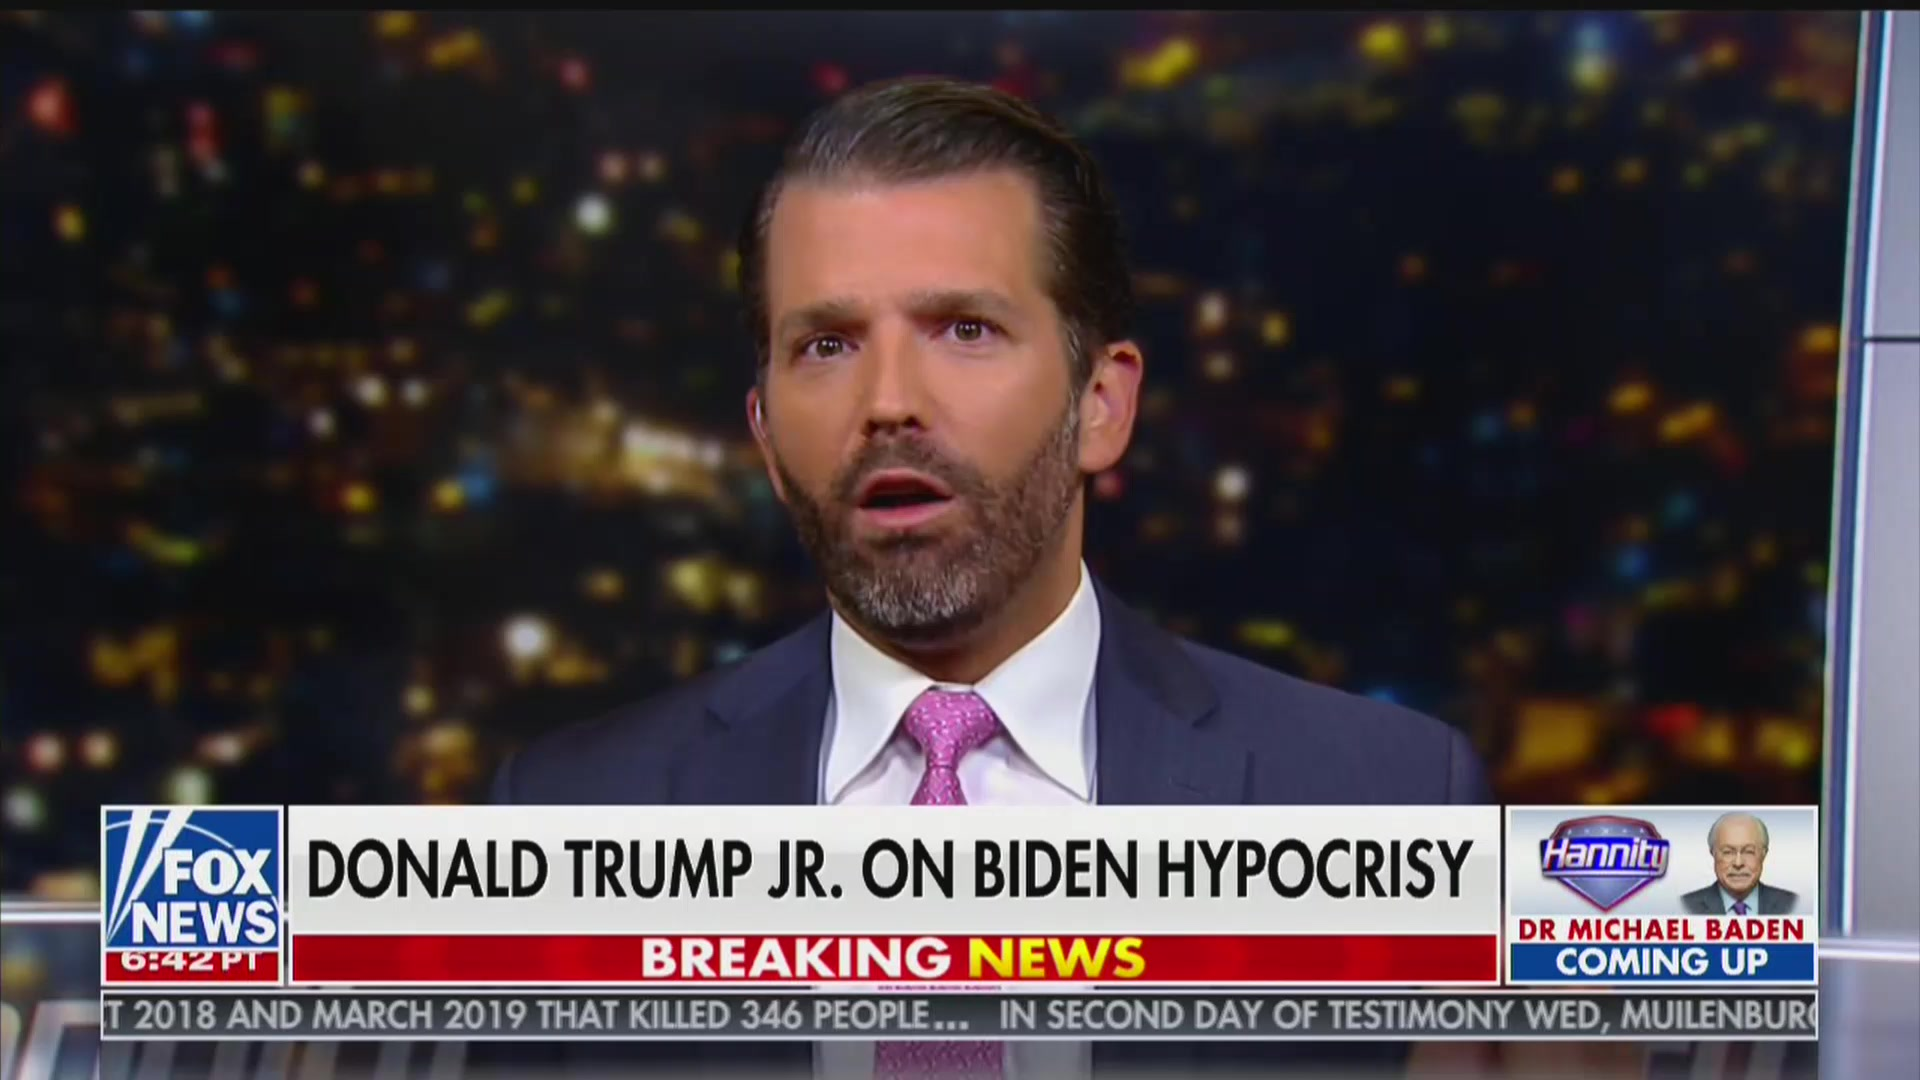 Donald Trump Jr: I Wish I Could 'Make Millions Off of My Father's Presidency' Like Hunter Biden